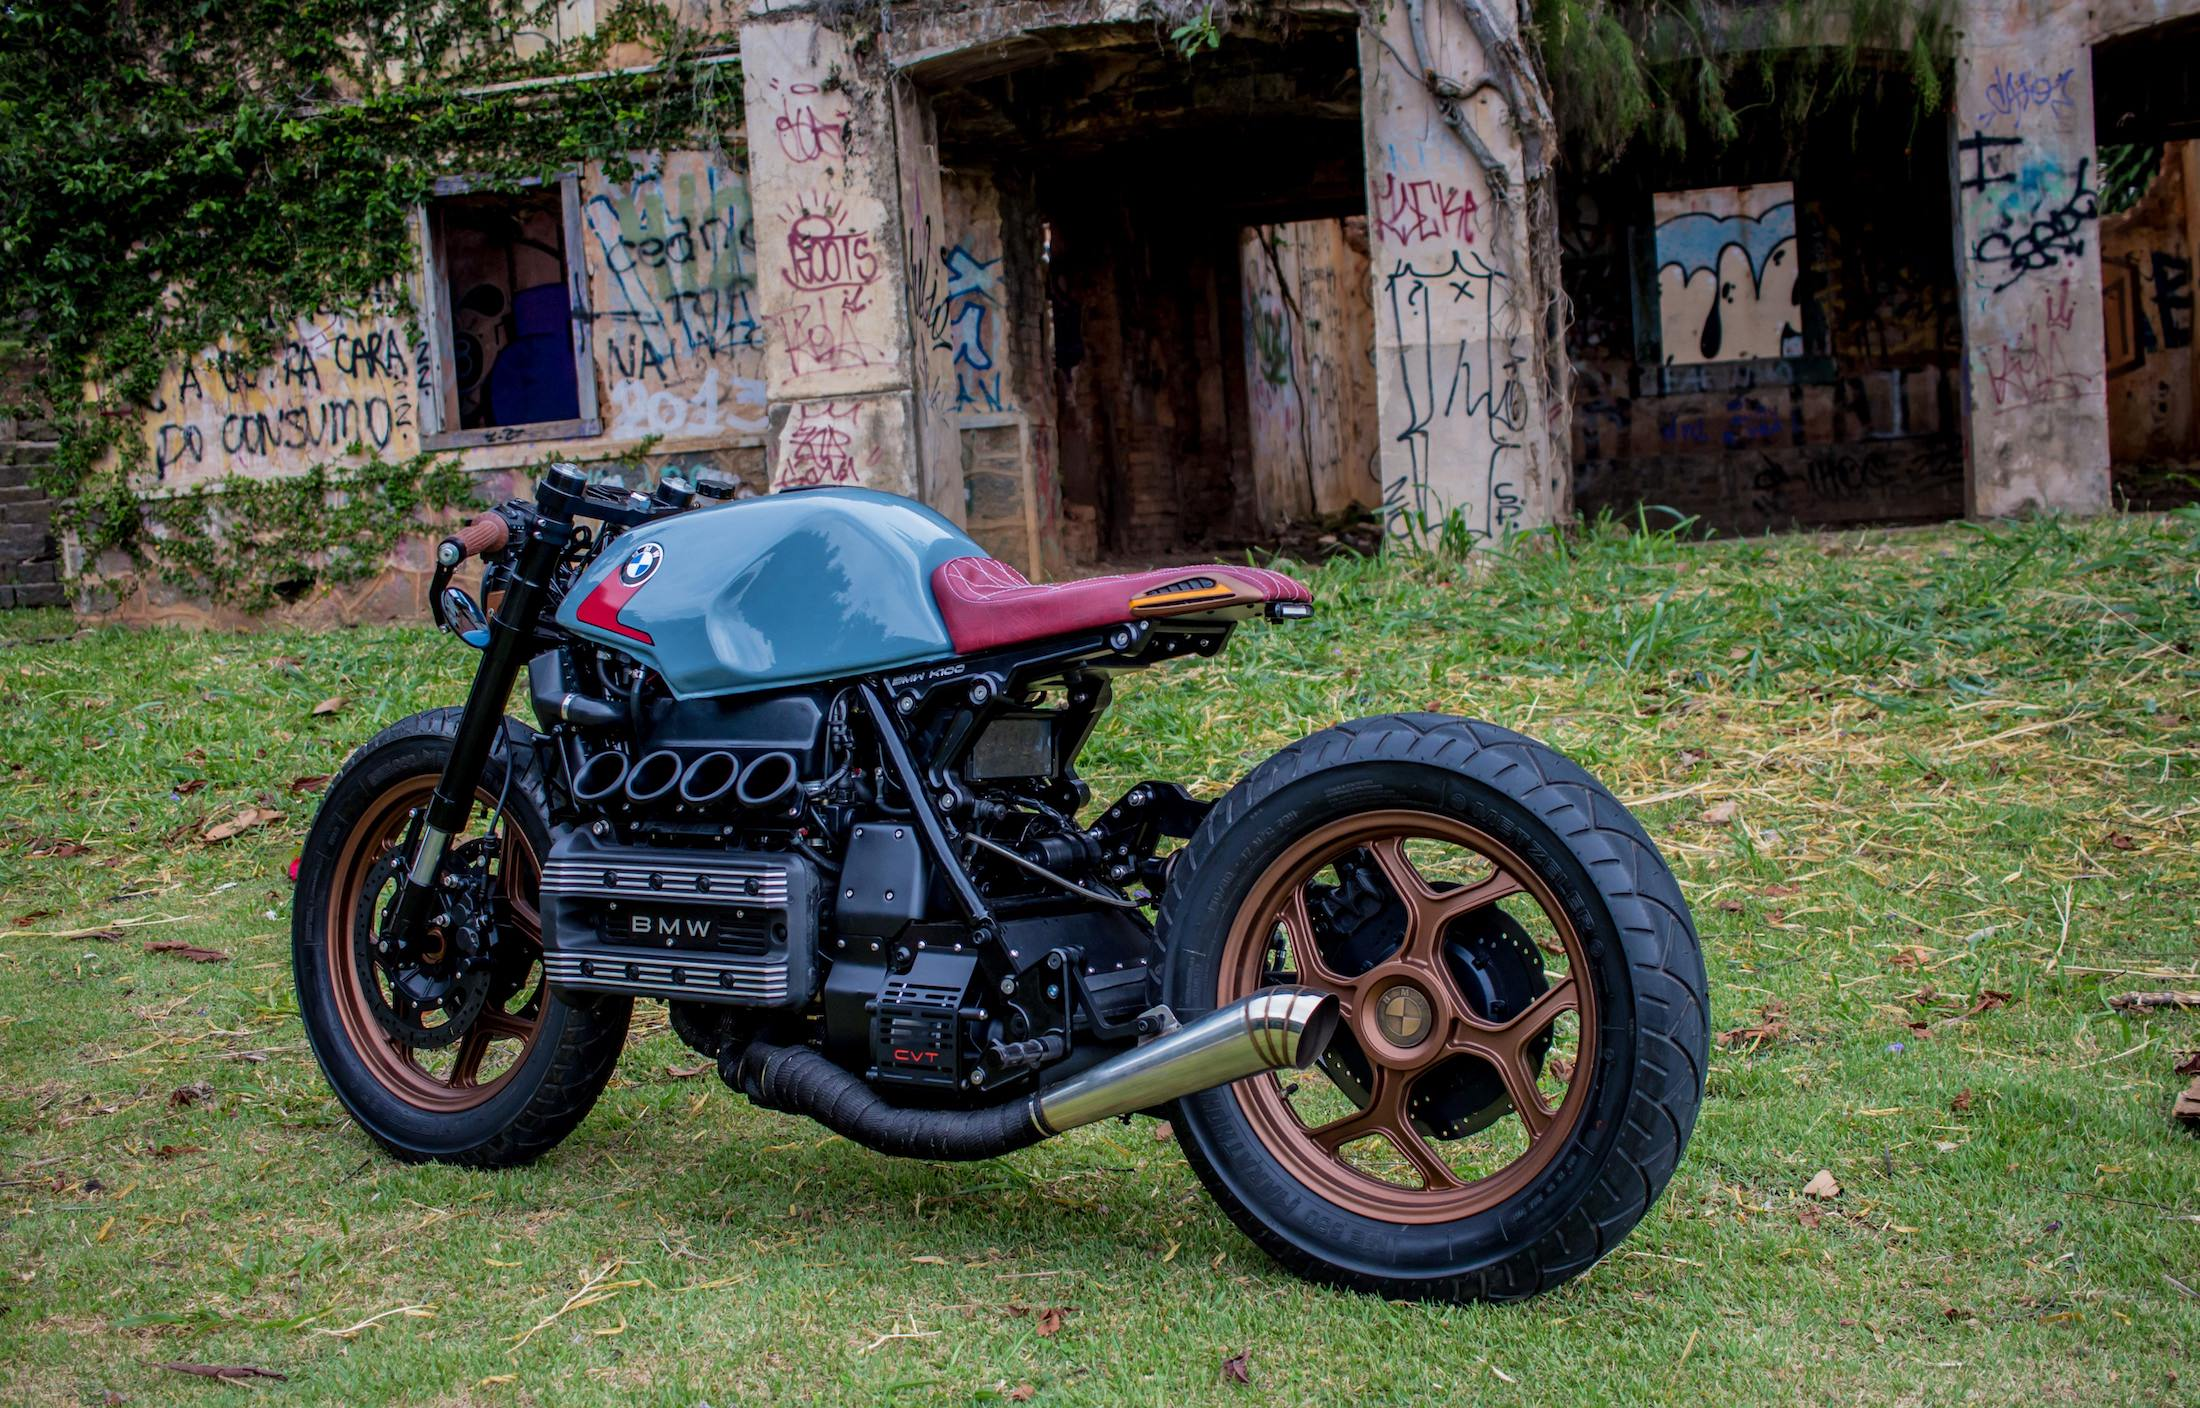 Custom K-100 Bike - elected the top 4 cafe racers in the